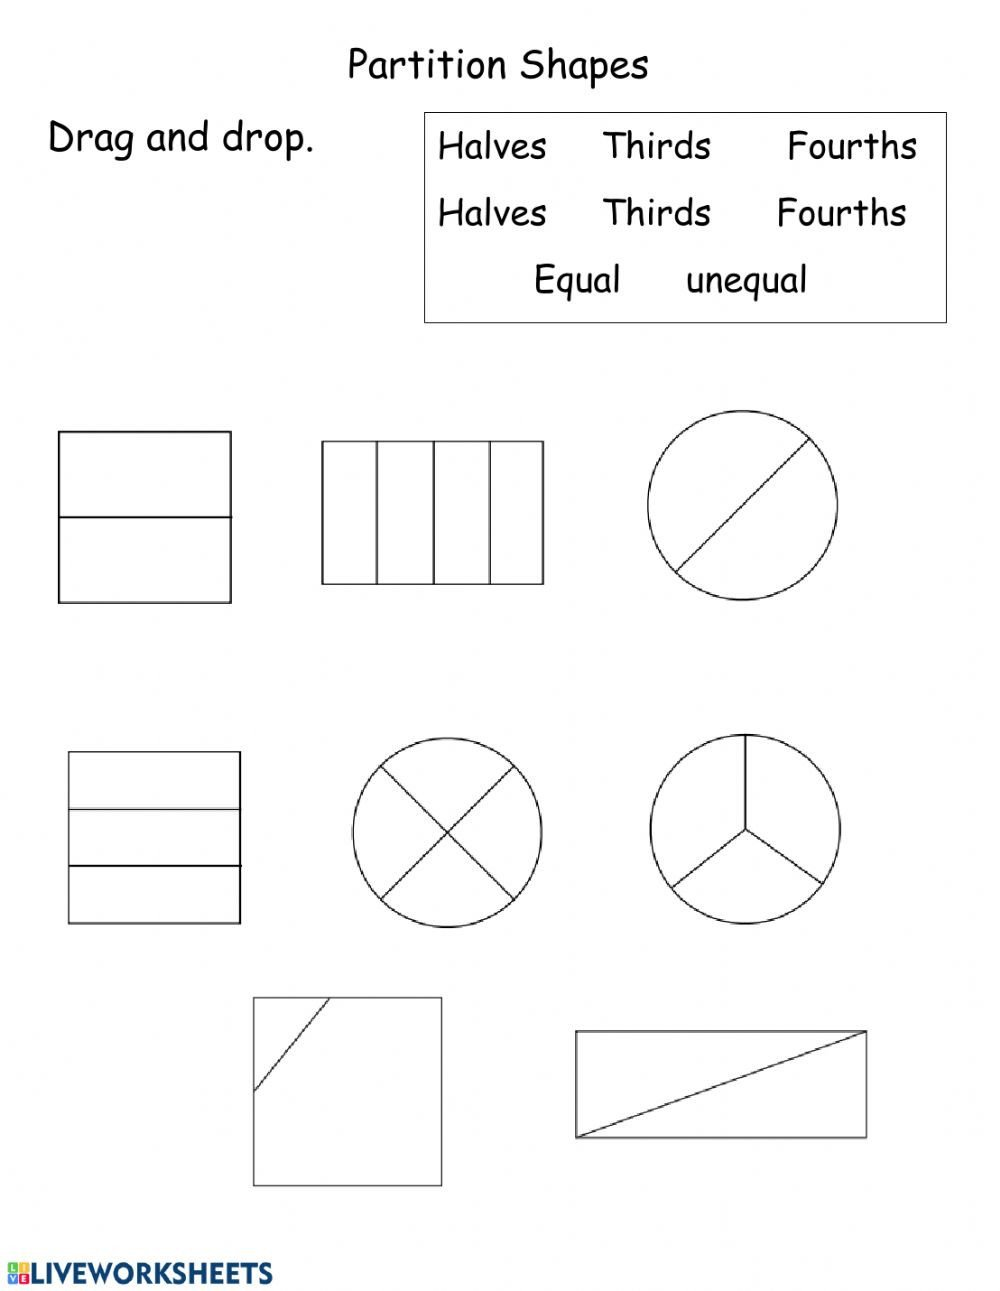 Halves Thirds Fourths Worksheets Partition Shapes Interactive Worksheet